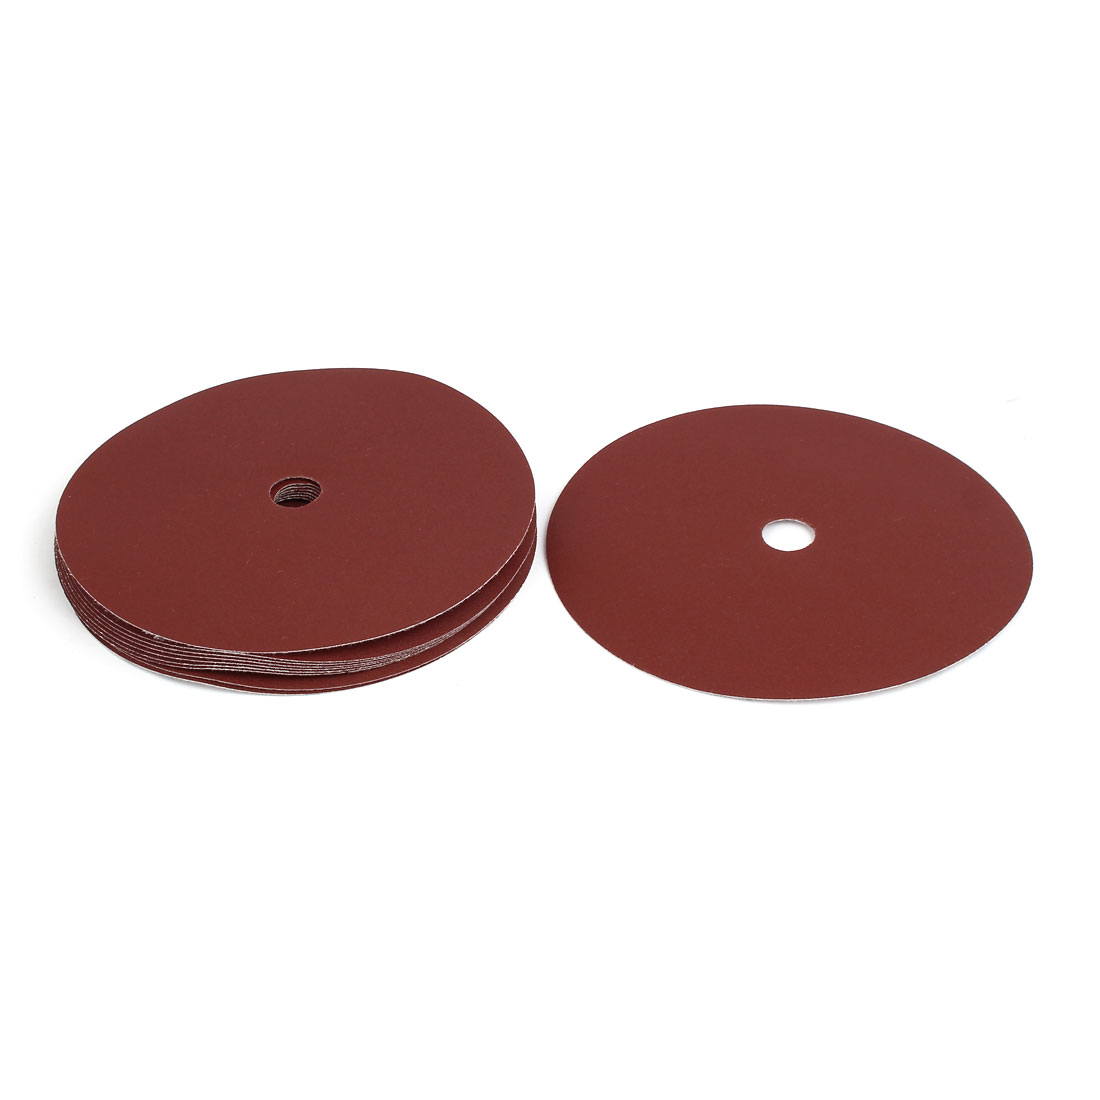 "240 Grit 1 Hole 7"" Diameter Sandpaper Hook Loop Sanding Disc 10 Pcs"